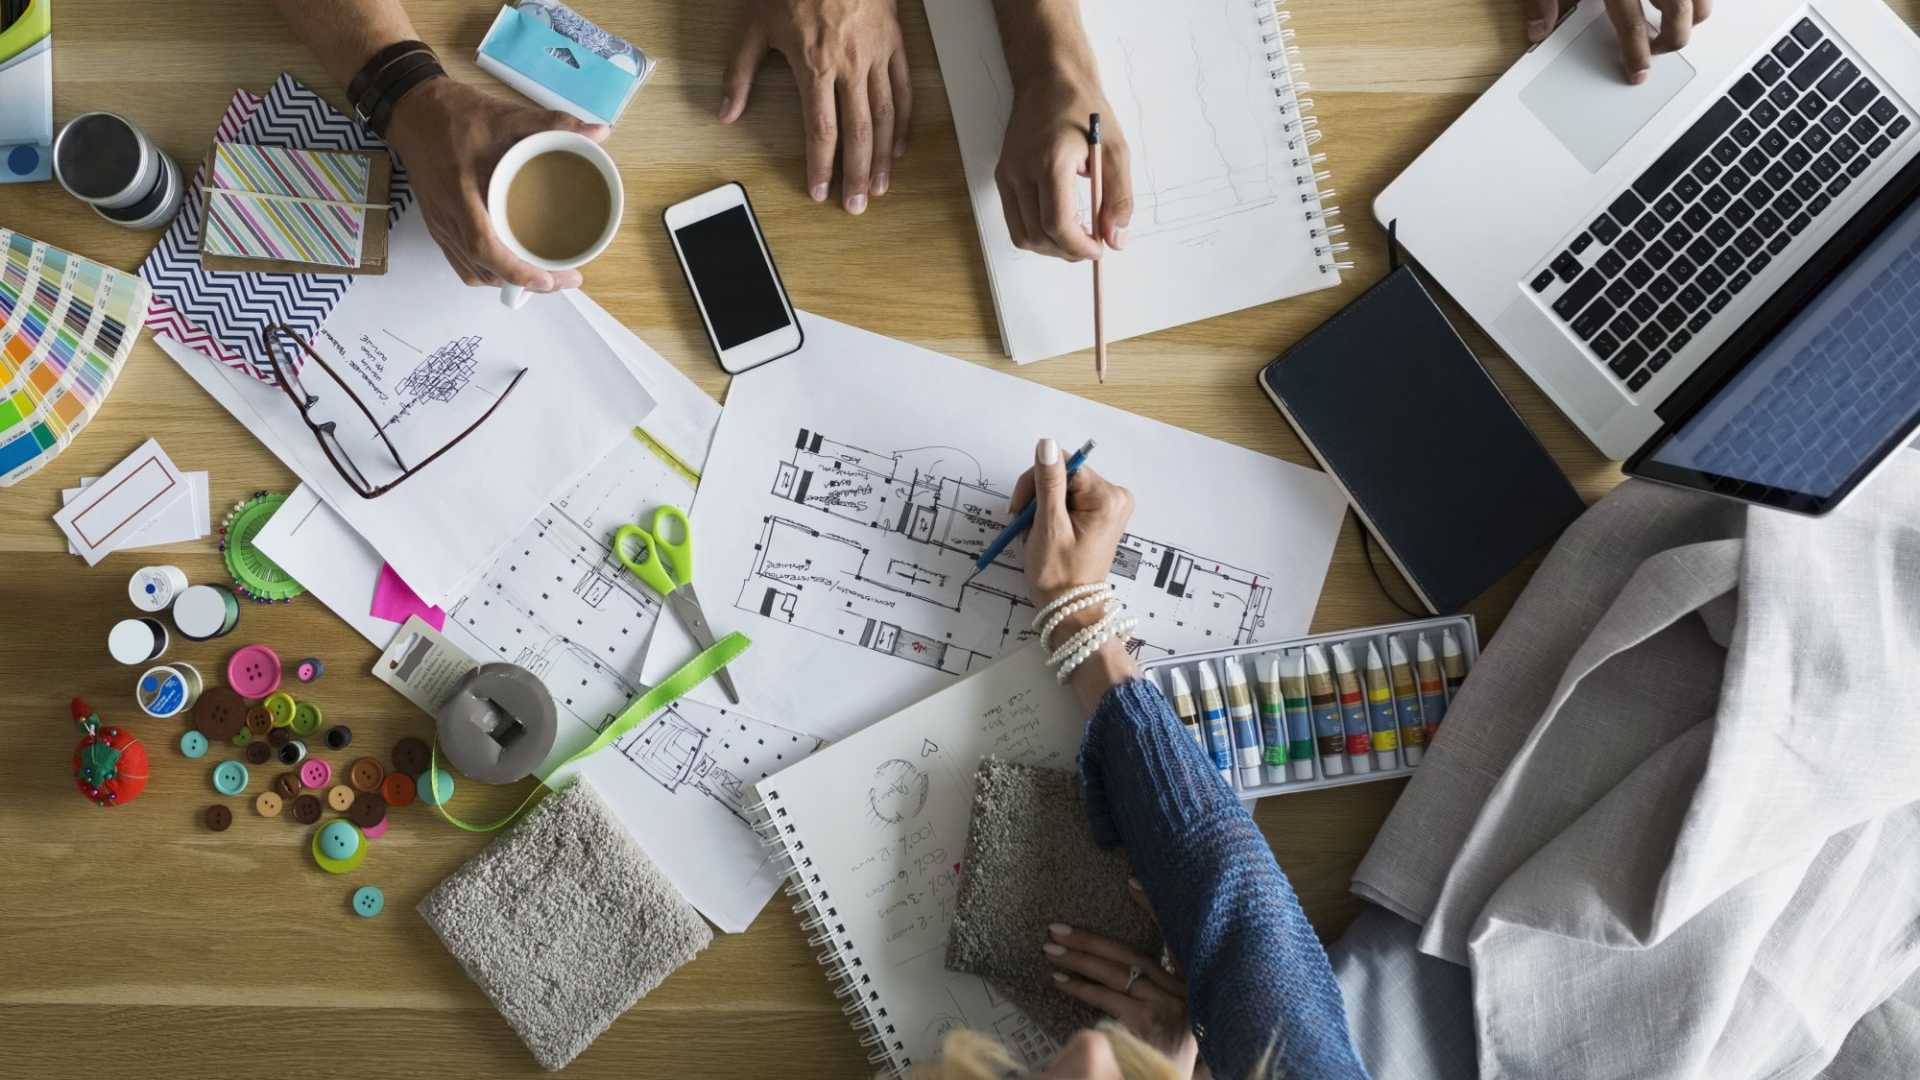 These 3 Practices Will Help You Become More Creative In Your Work